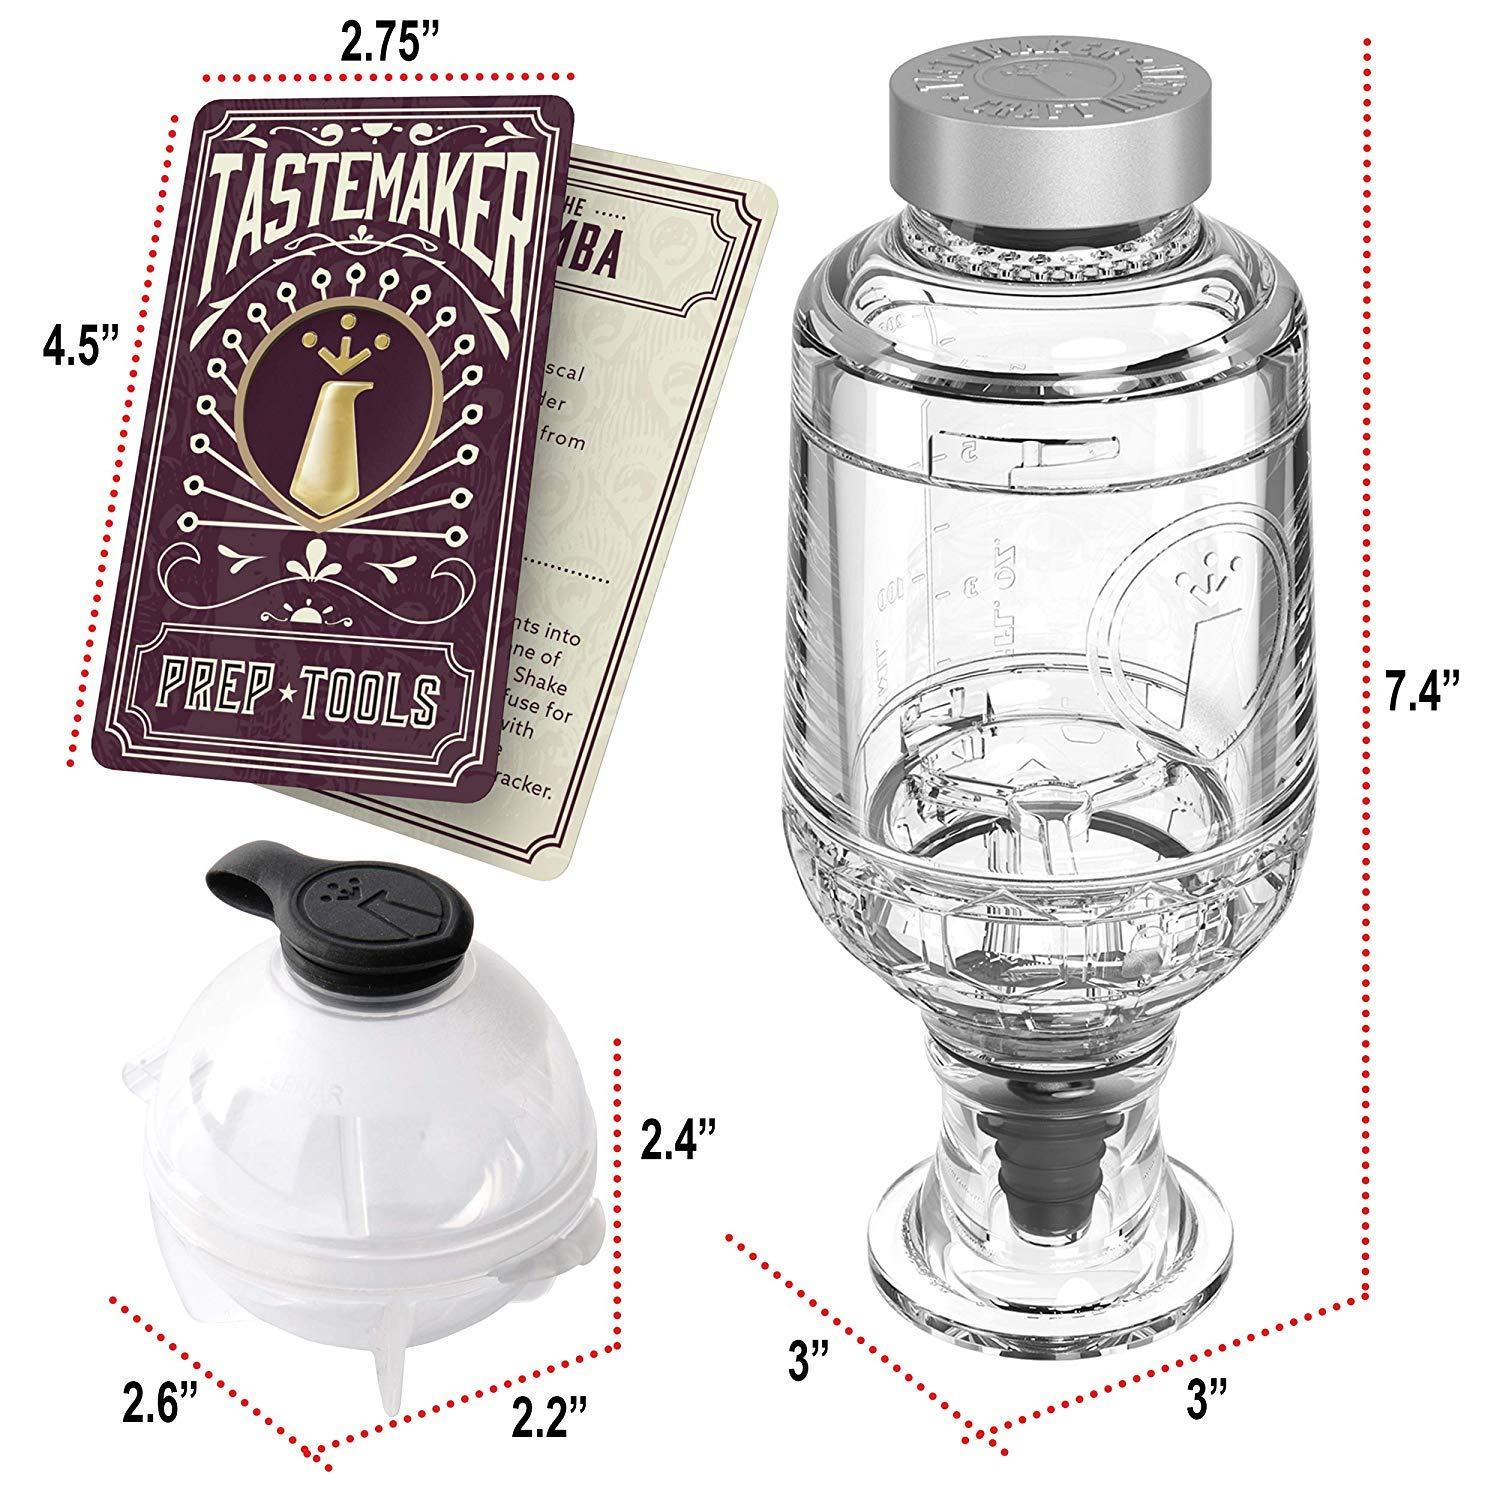 a Great Gift Item 4 Round Ice Ball Molds Be an Infused Alcohol Cocktail Mixologist using the 10 Homemade Flavored Recipes Active Infusion Tastemaker Cocktail Shaker Infuser Set Best Home Bar Kit